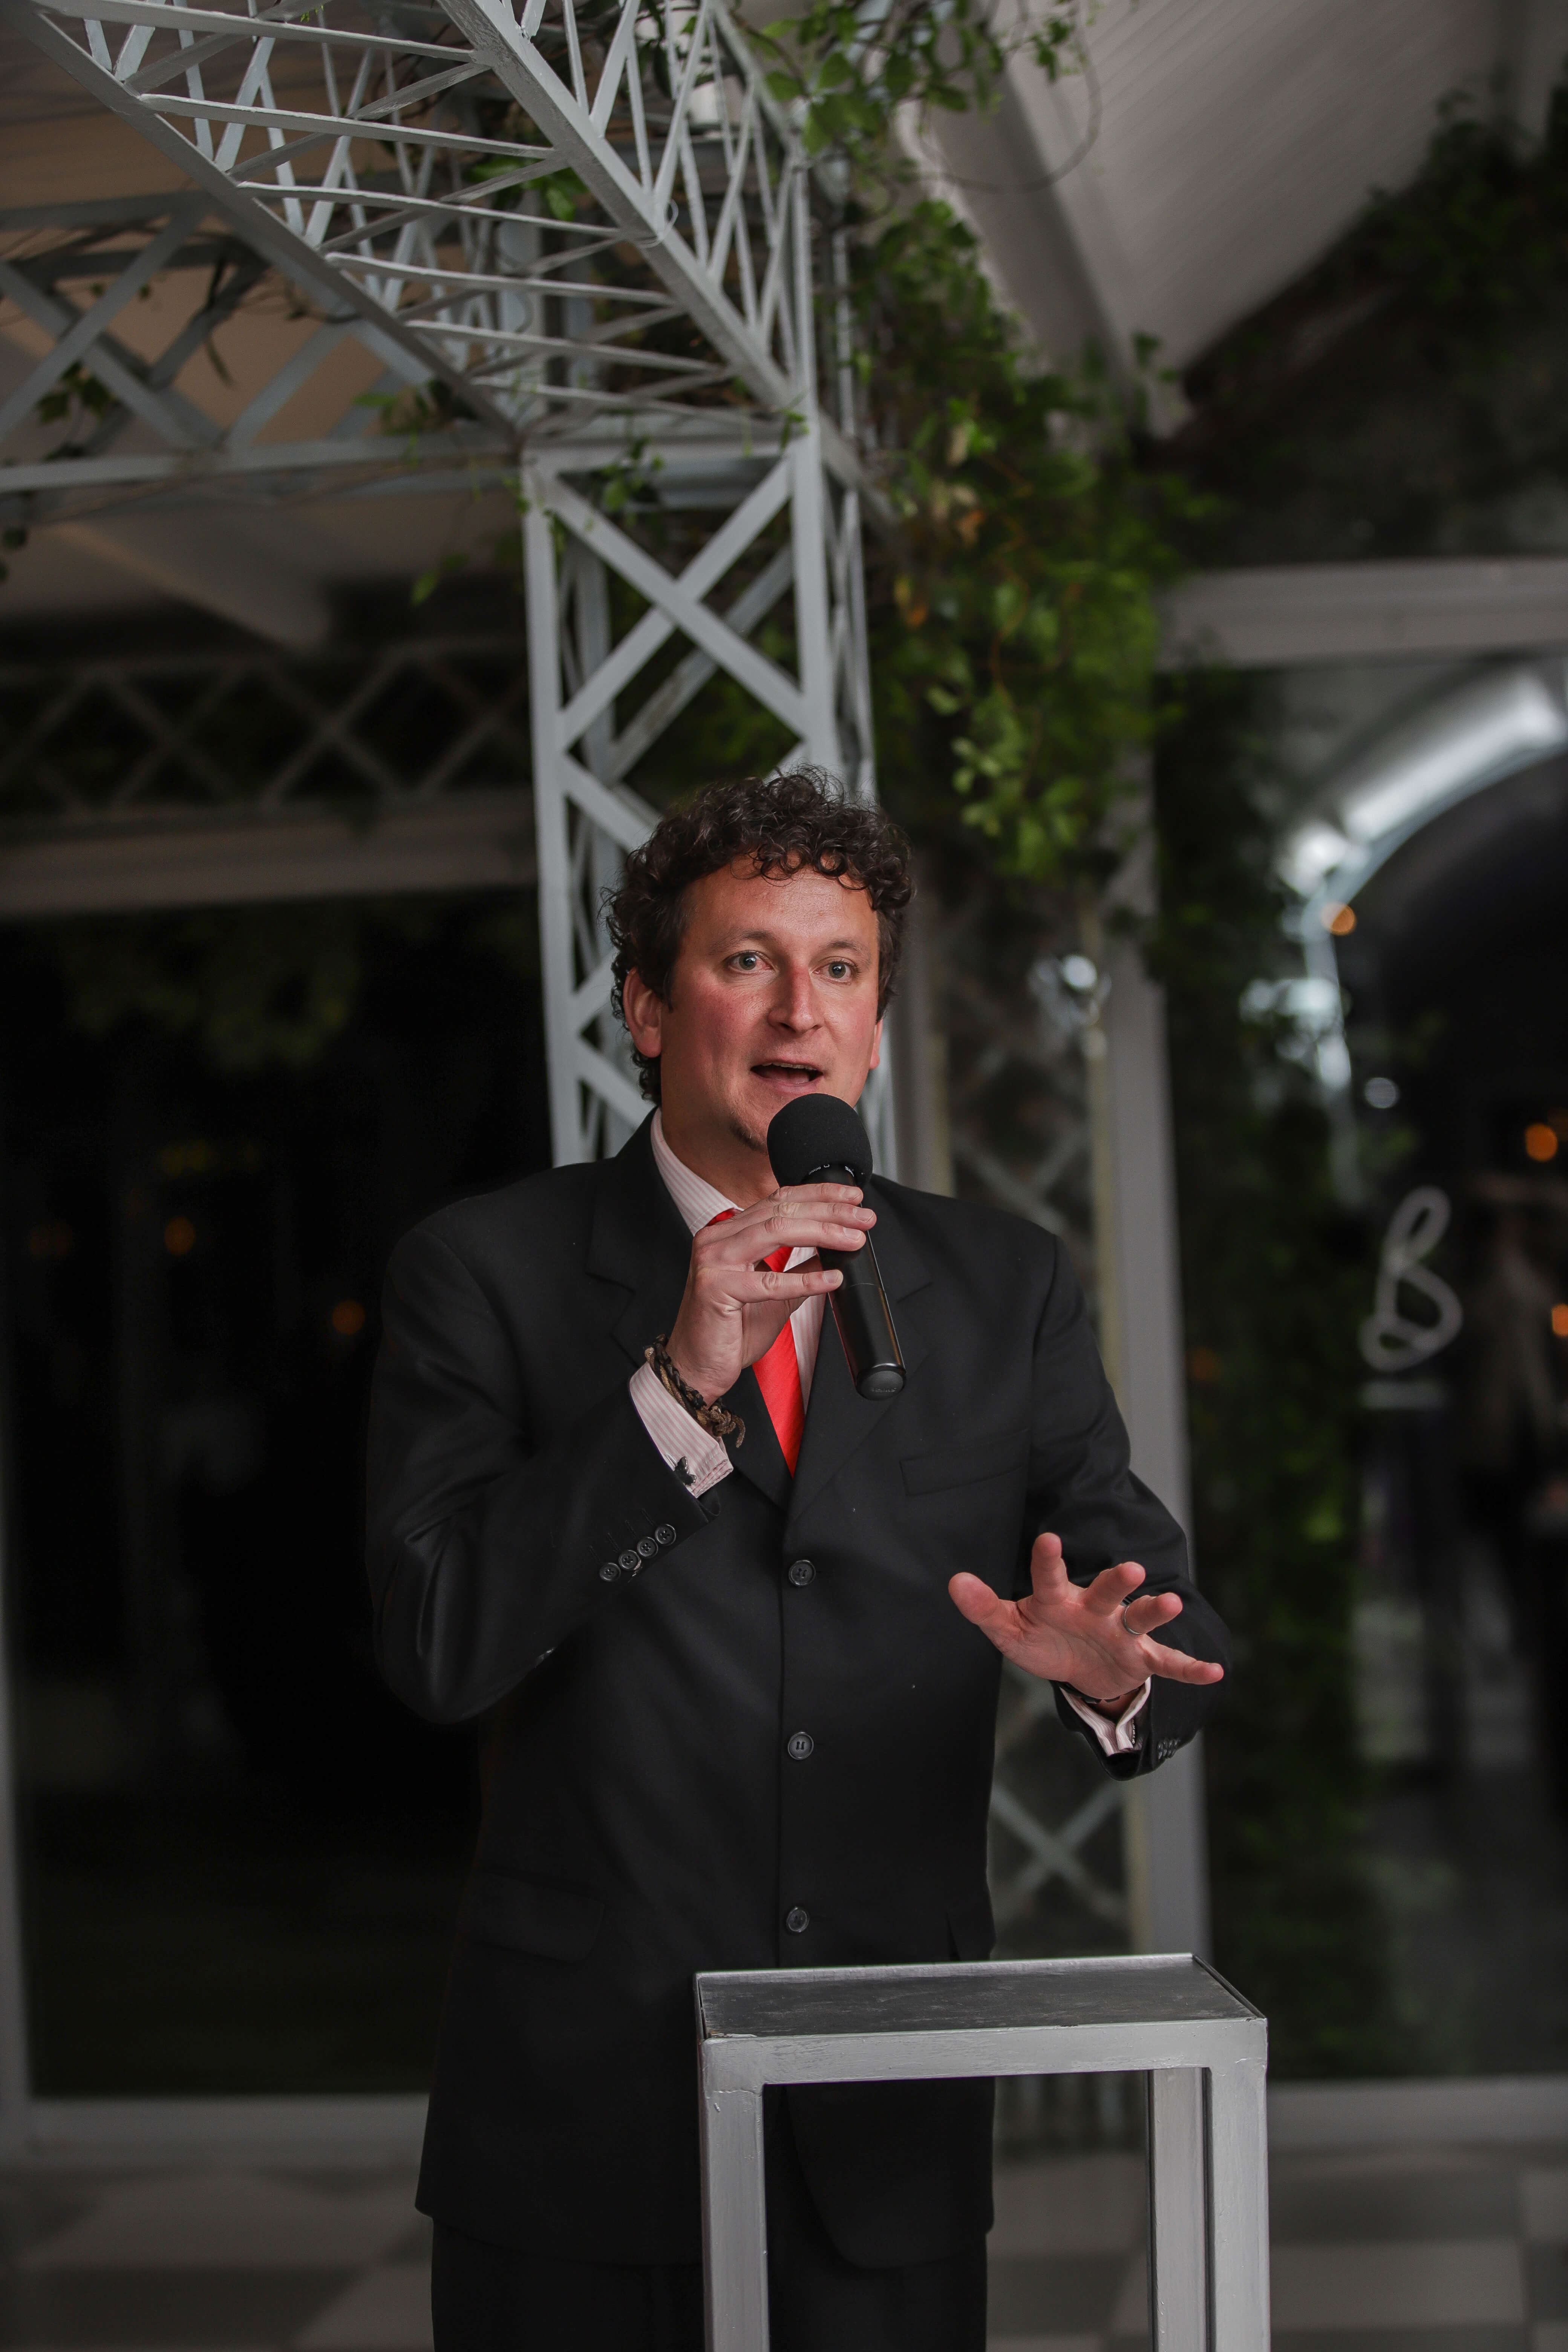 A man in a grey suit with a red tie giving a speech.